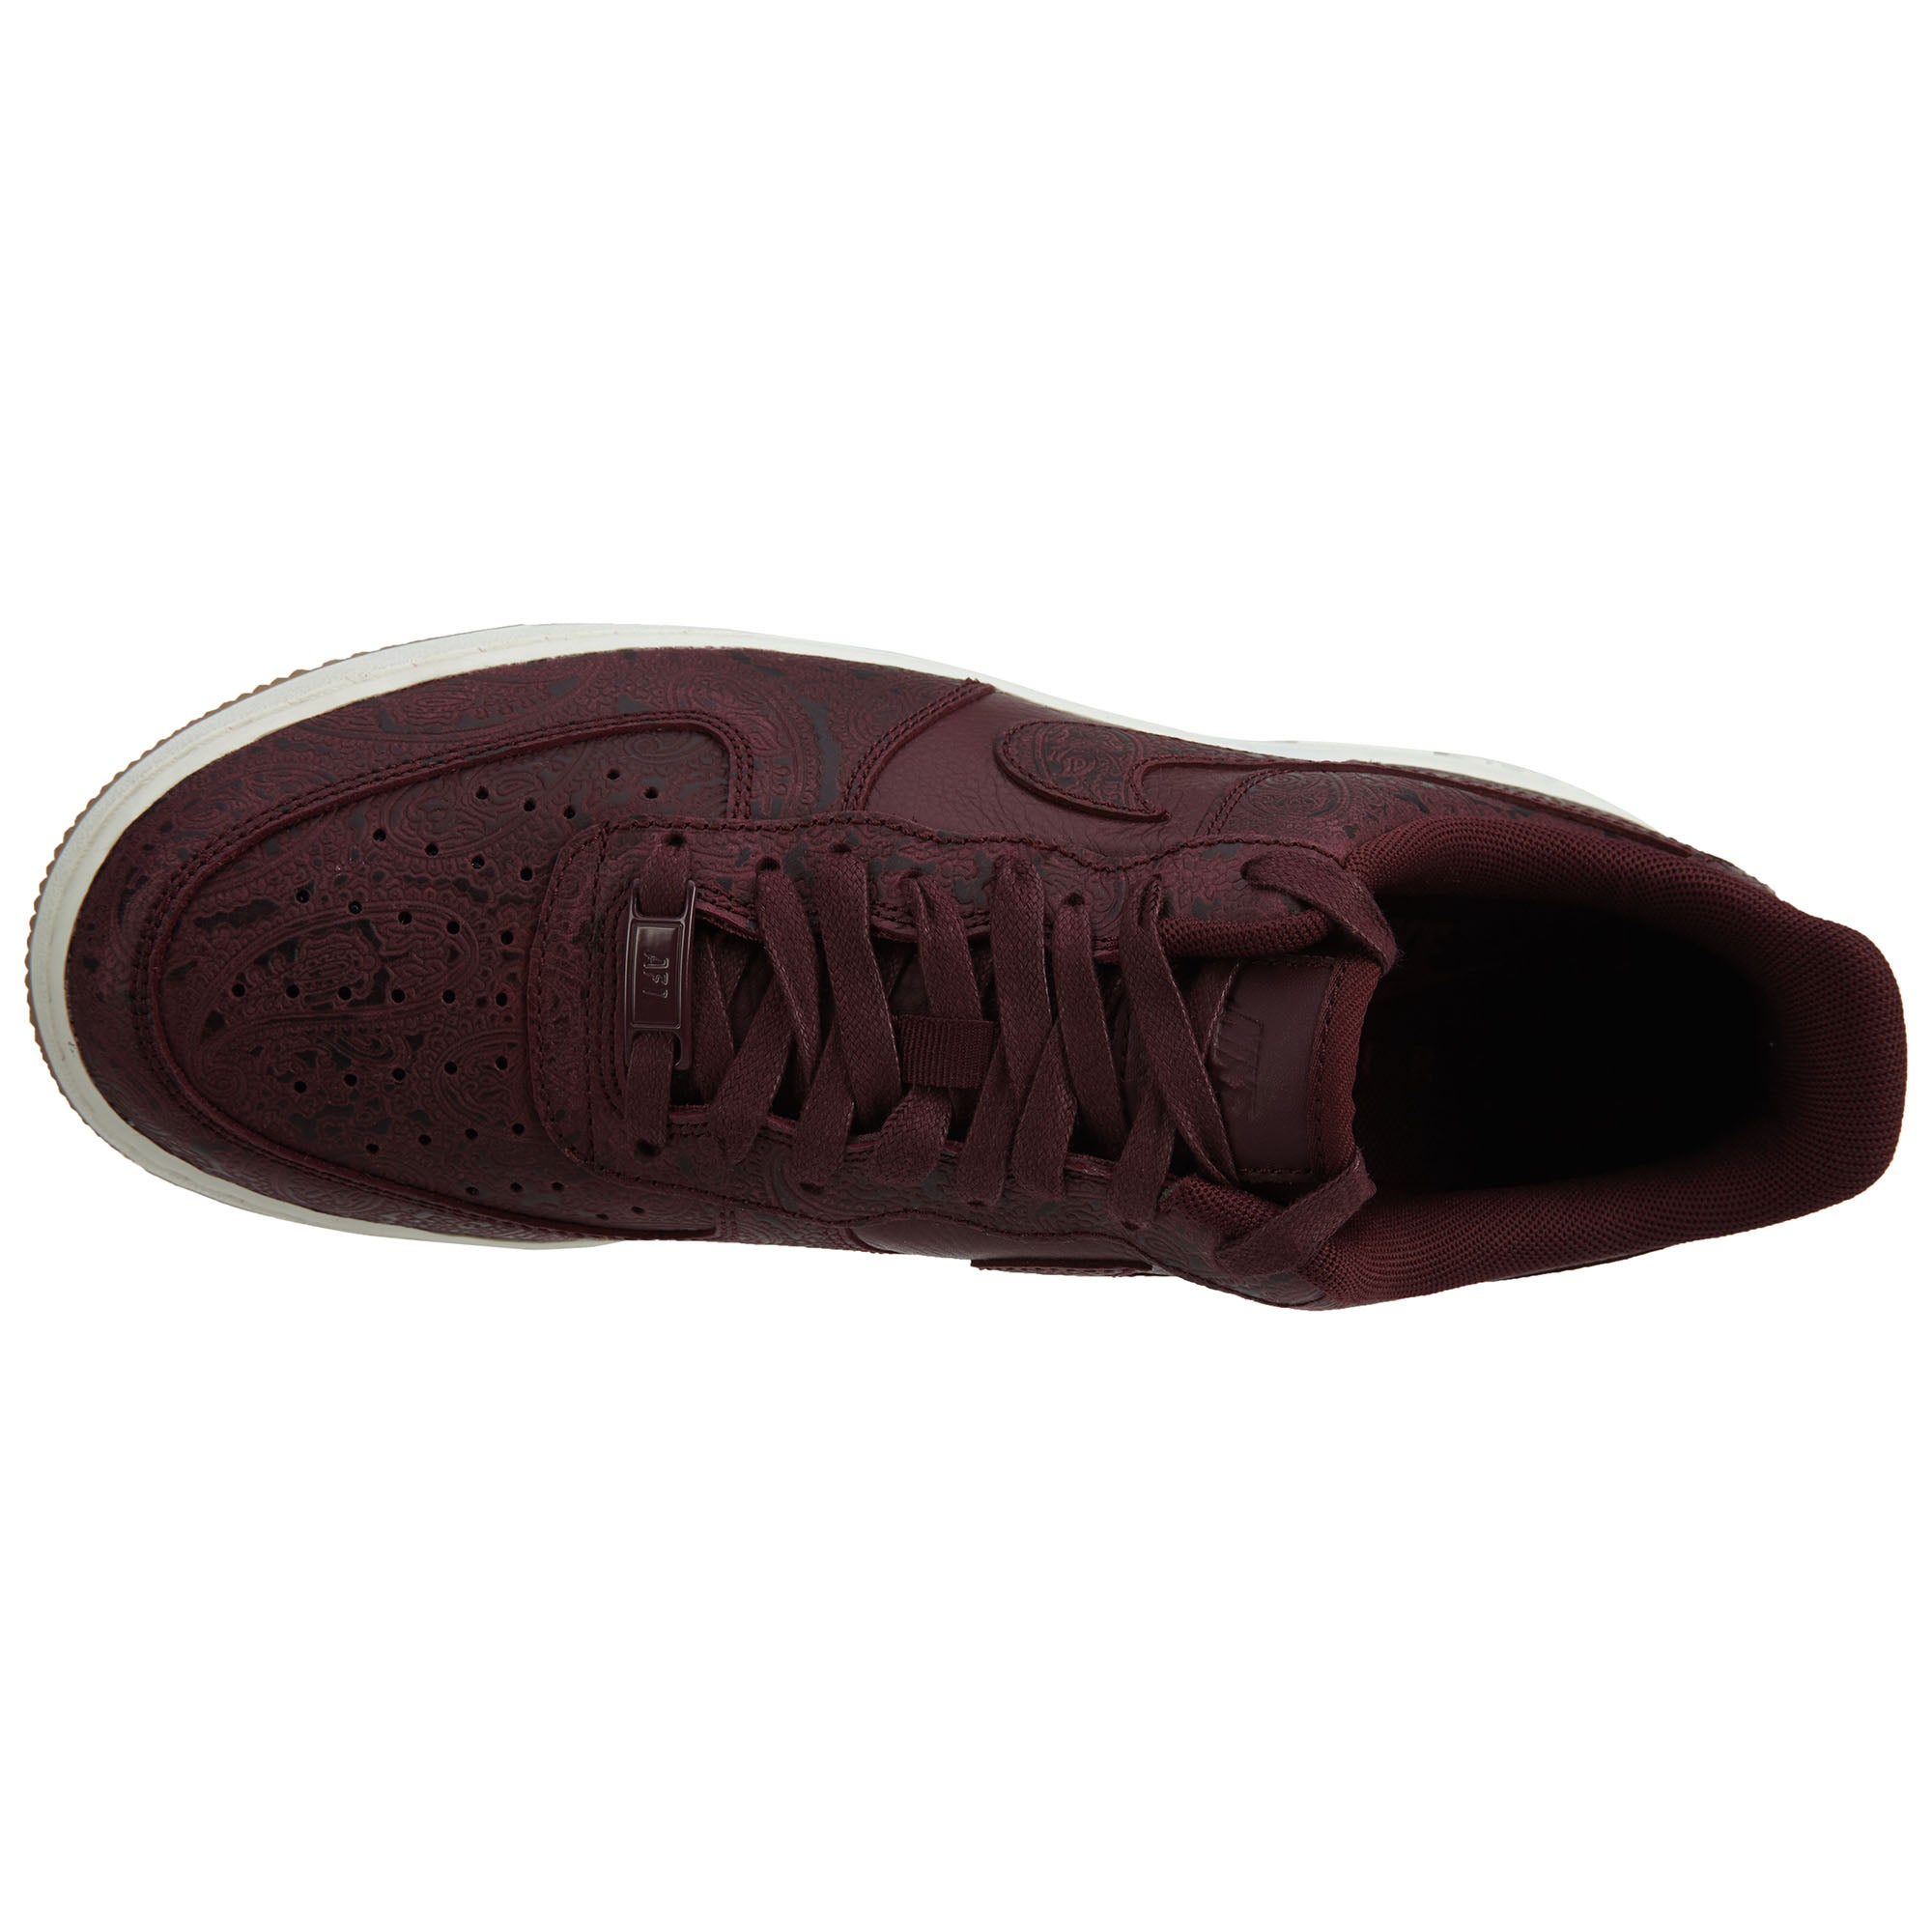 best sneakers d7eb3 16688 Nike Air Force 1 07 Prm Ess Womens ...